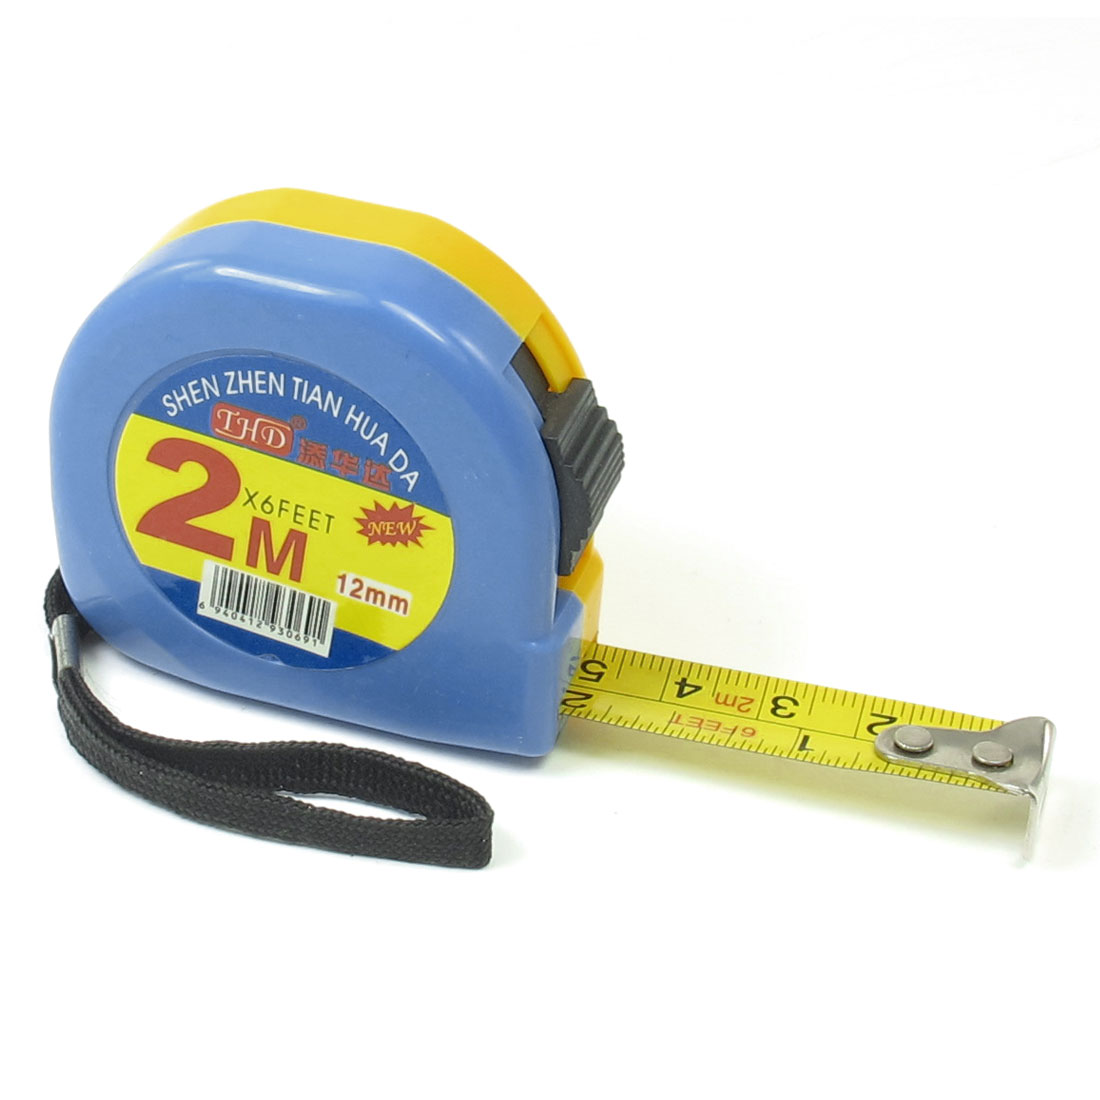 Yellow Blue Plastic Housing Dual Scale Retractable Tape Measure 2M